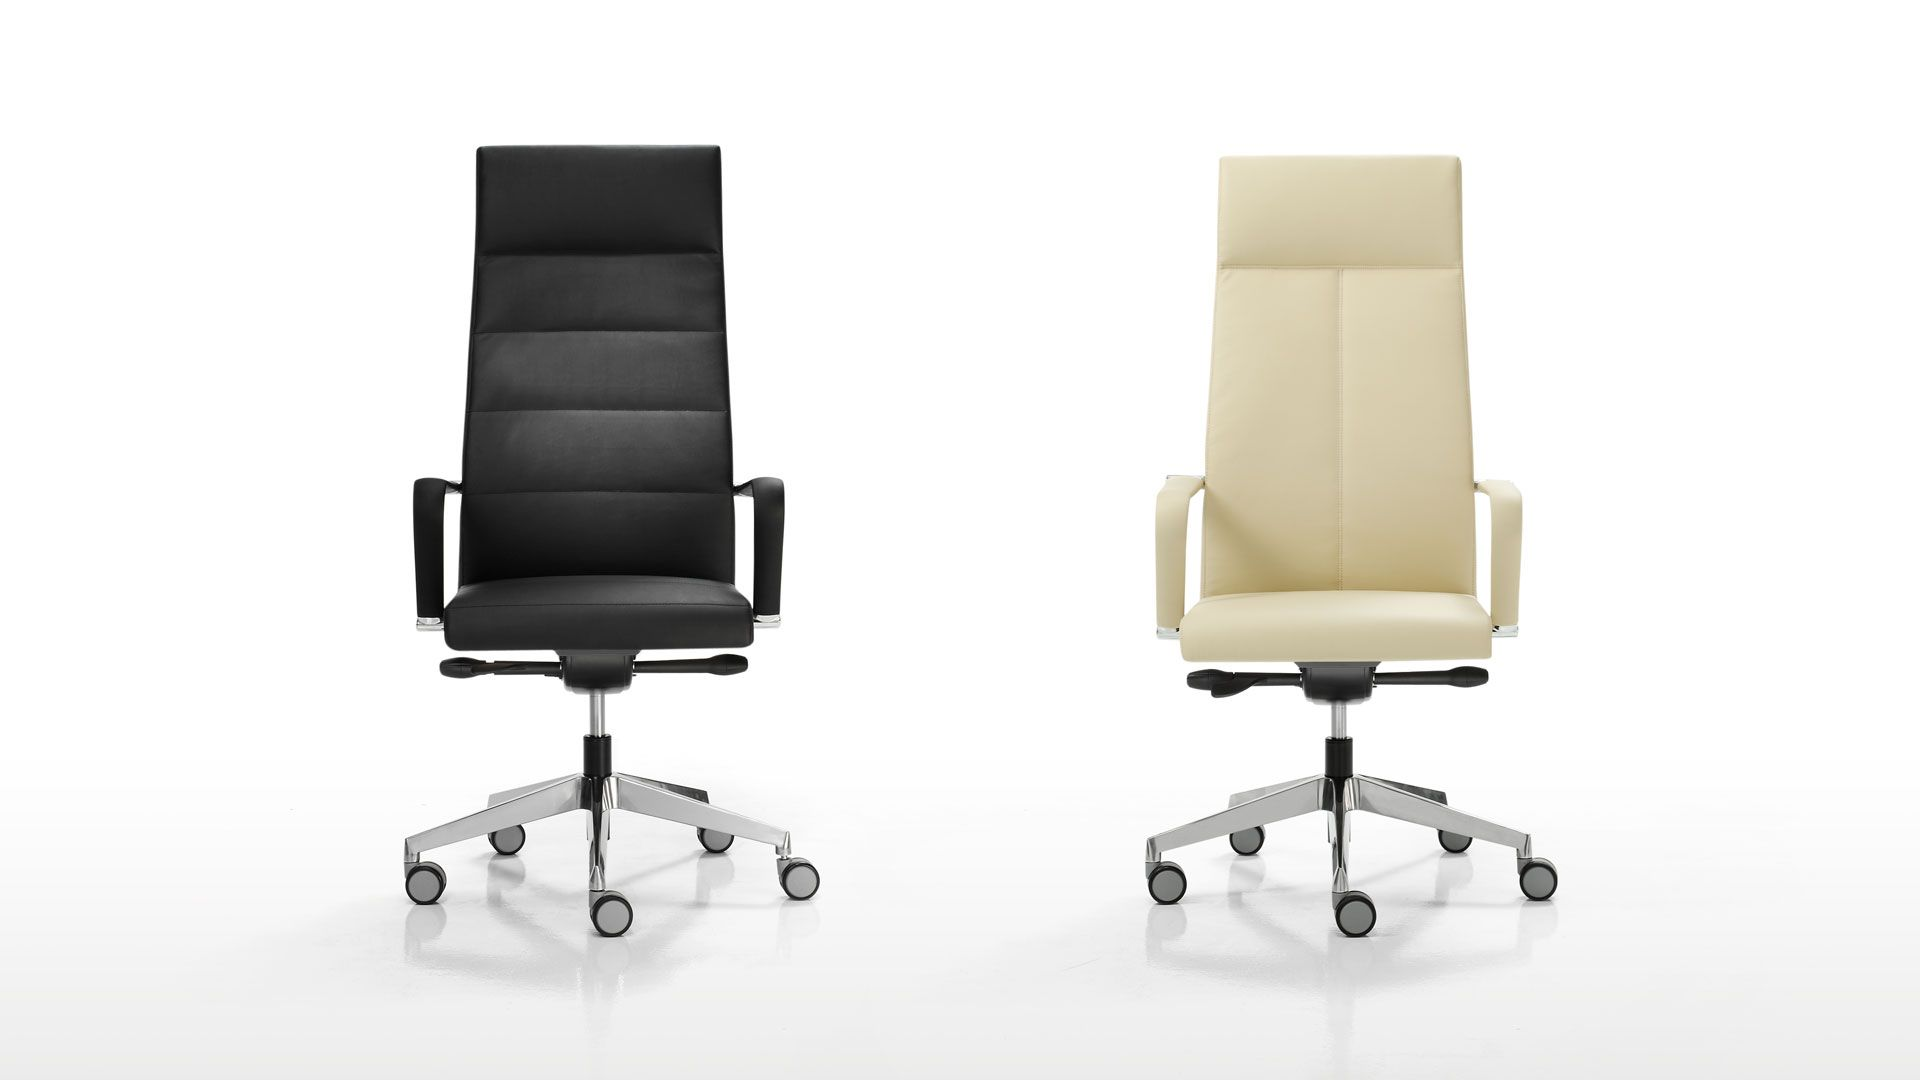 Millinium Commercial Furniture Ergonomic Chair Design